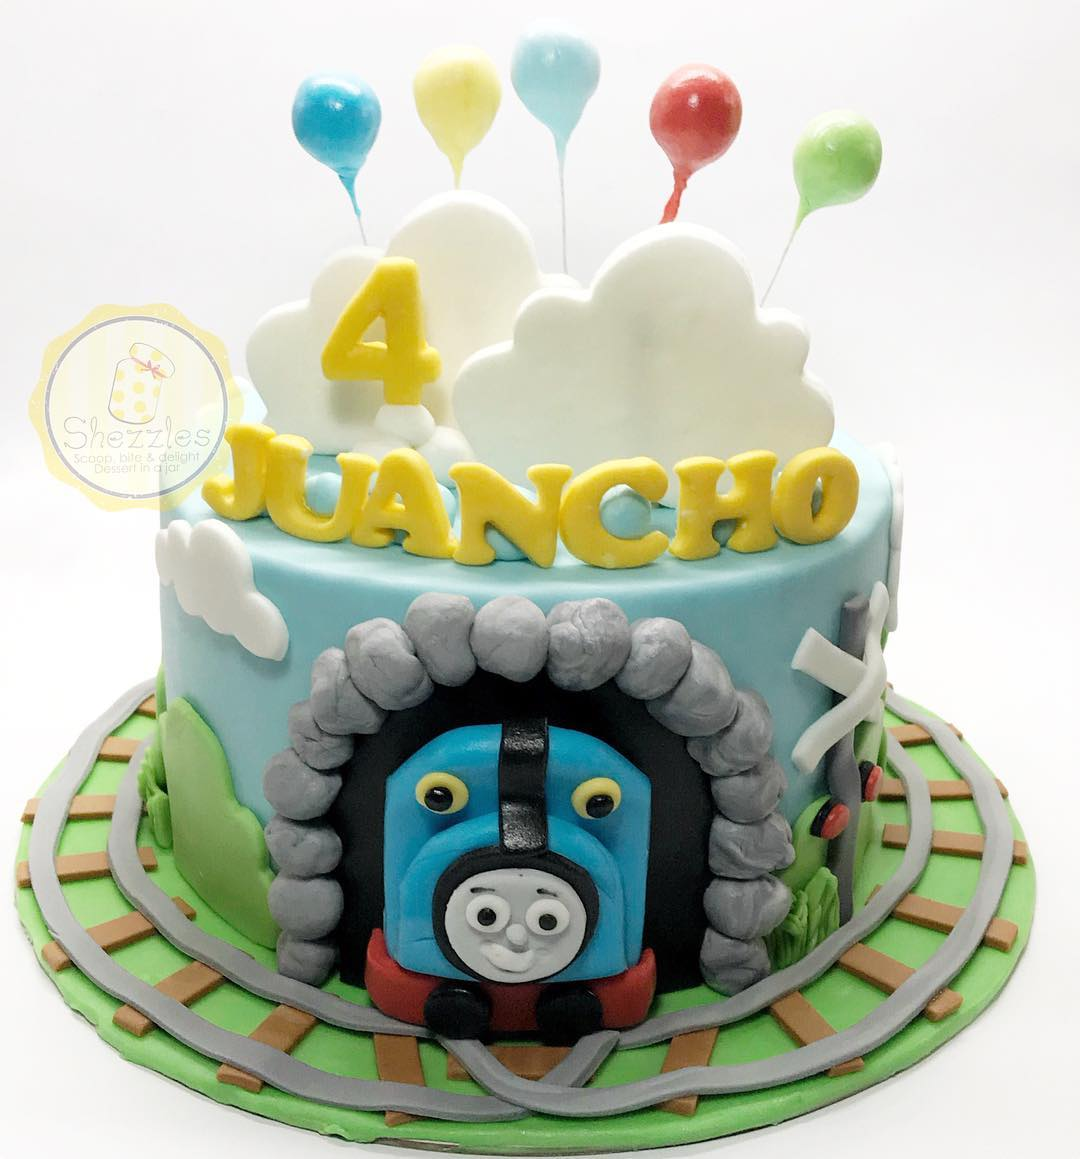 Miraculous Shezzles Cakes And Pastries Thomas And Friends Theme Cake And Funny Birthday Cards Online Overcheapnameinfo